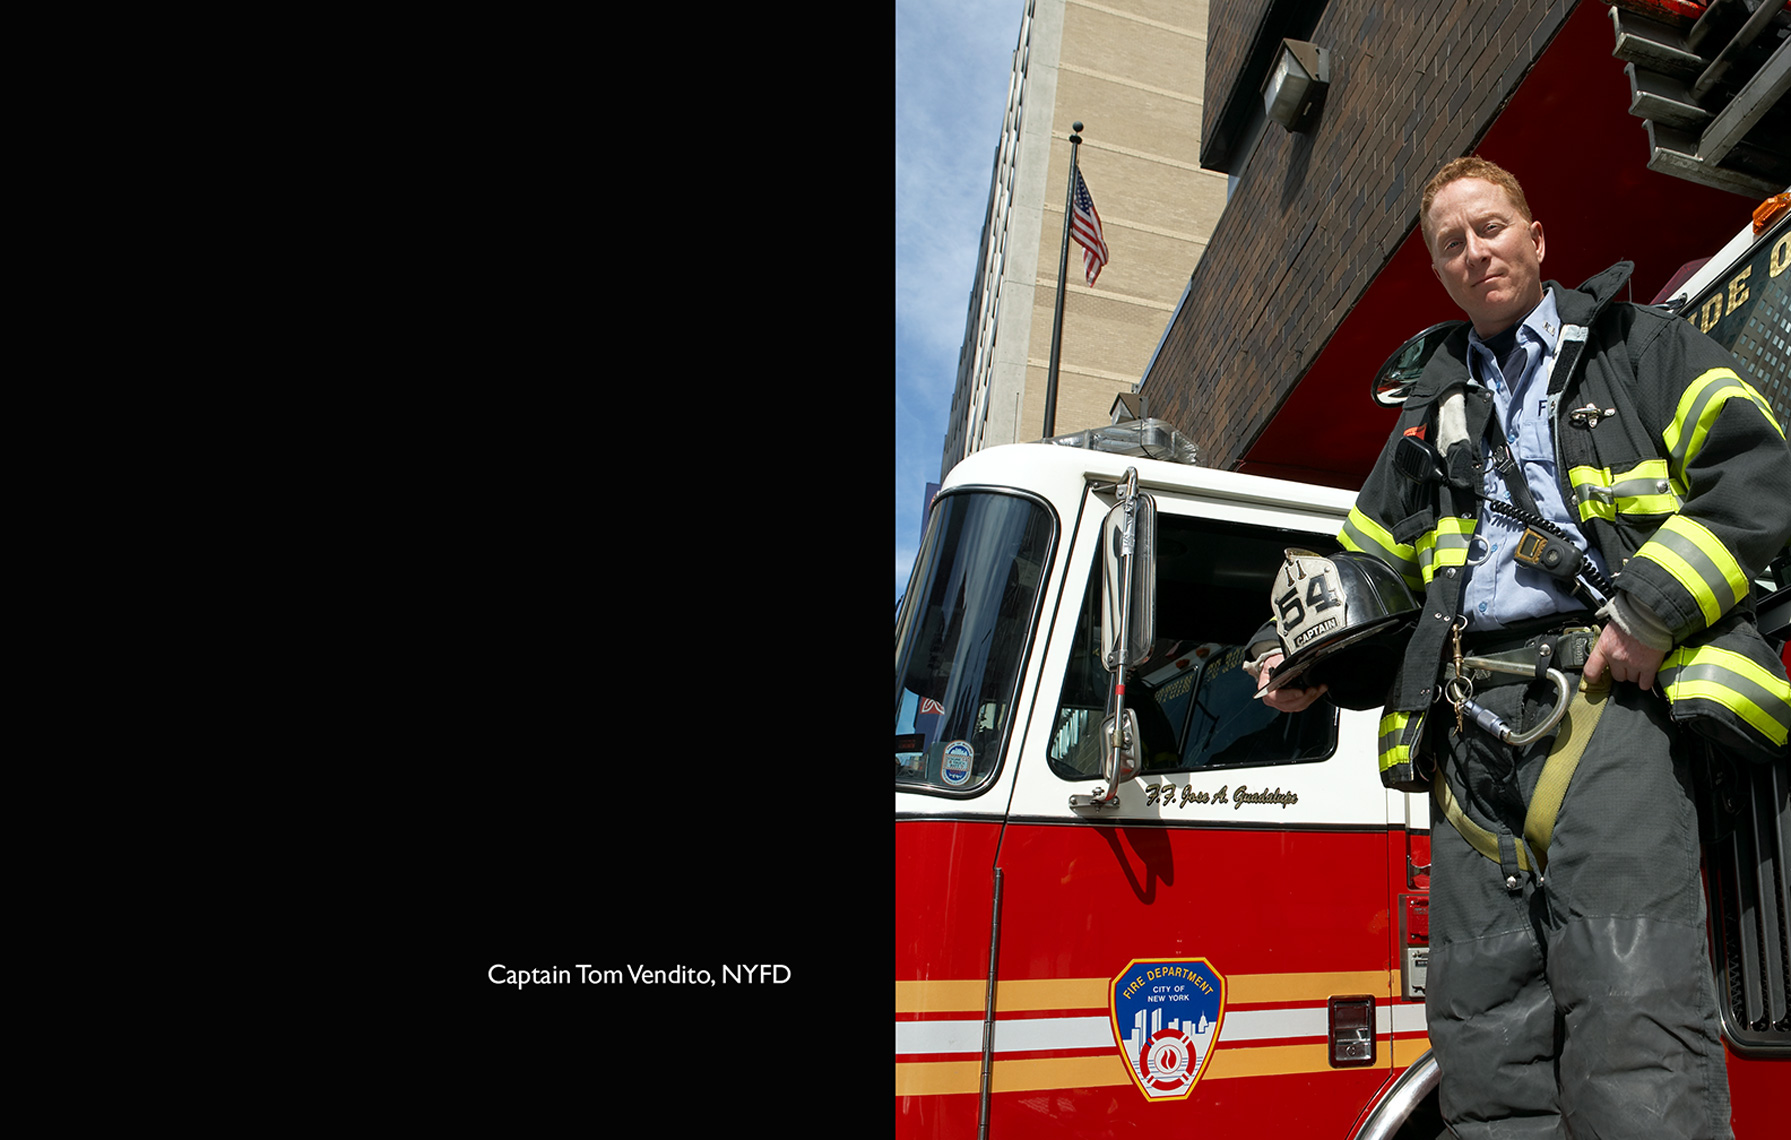 fireman standing in front of fire truck fire station